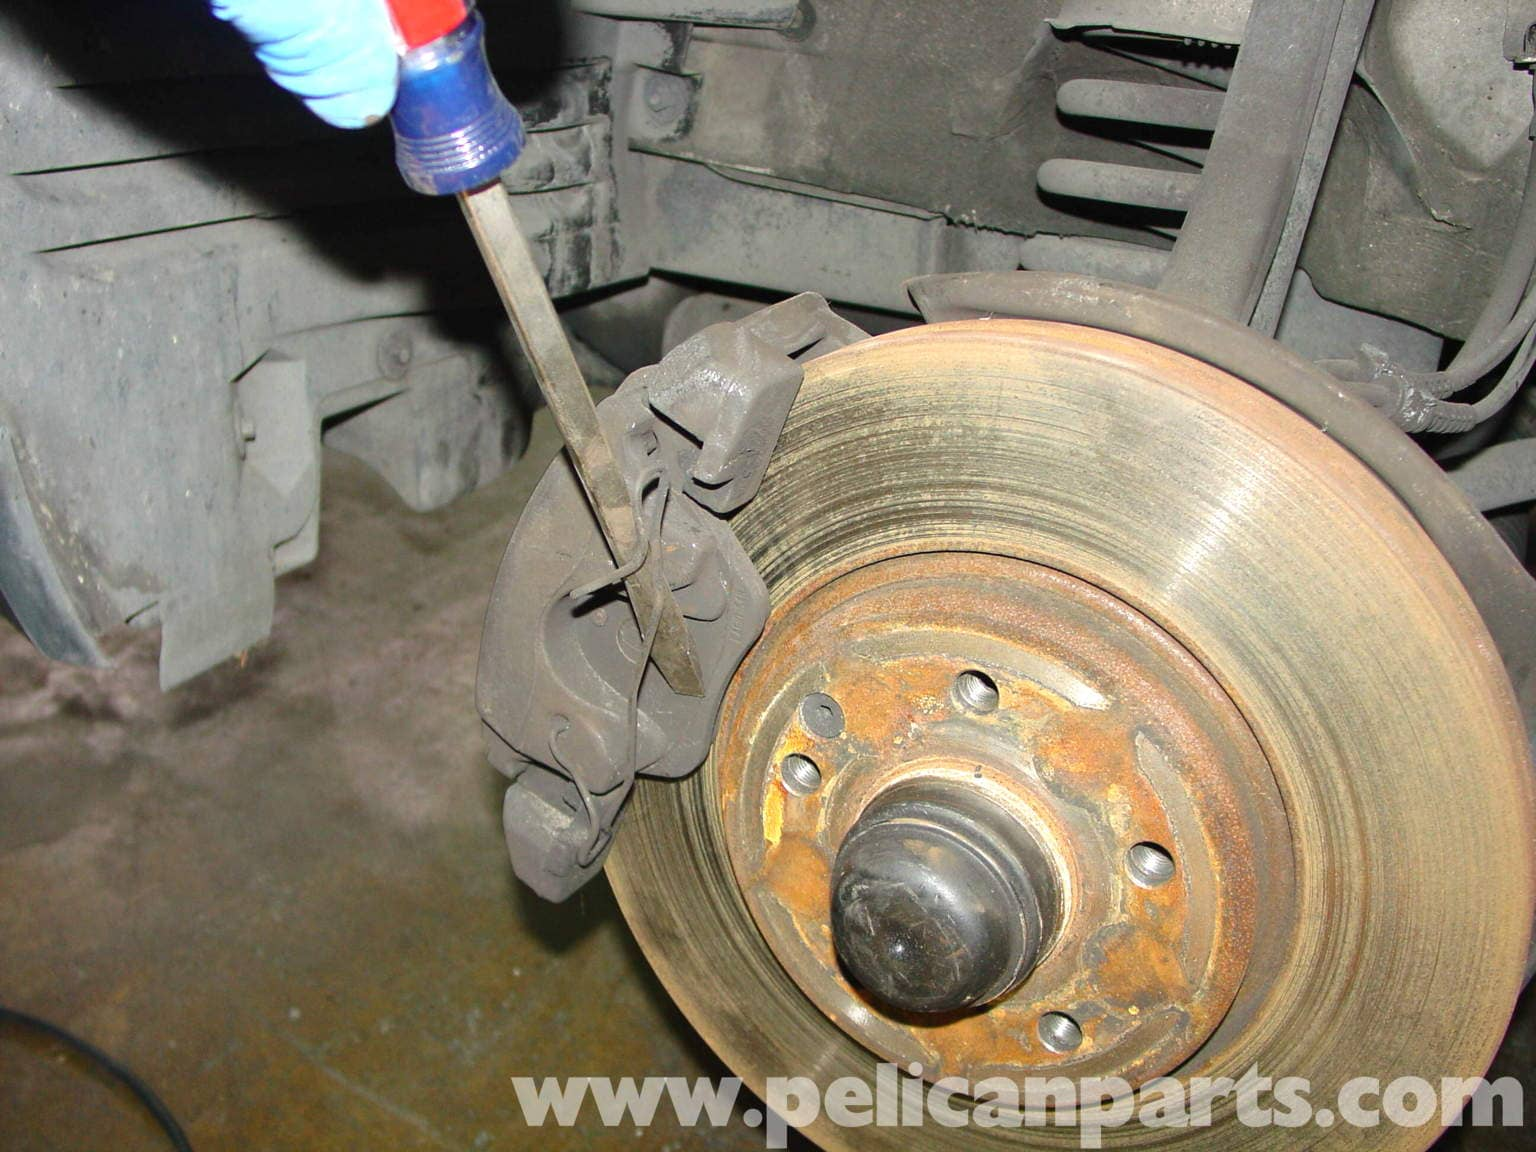 Service manual change front break pads on a 1993 mercedes for Mercedes benz e350 brake pads replacement